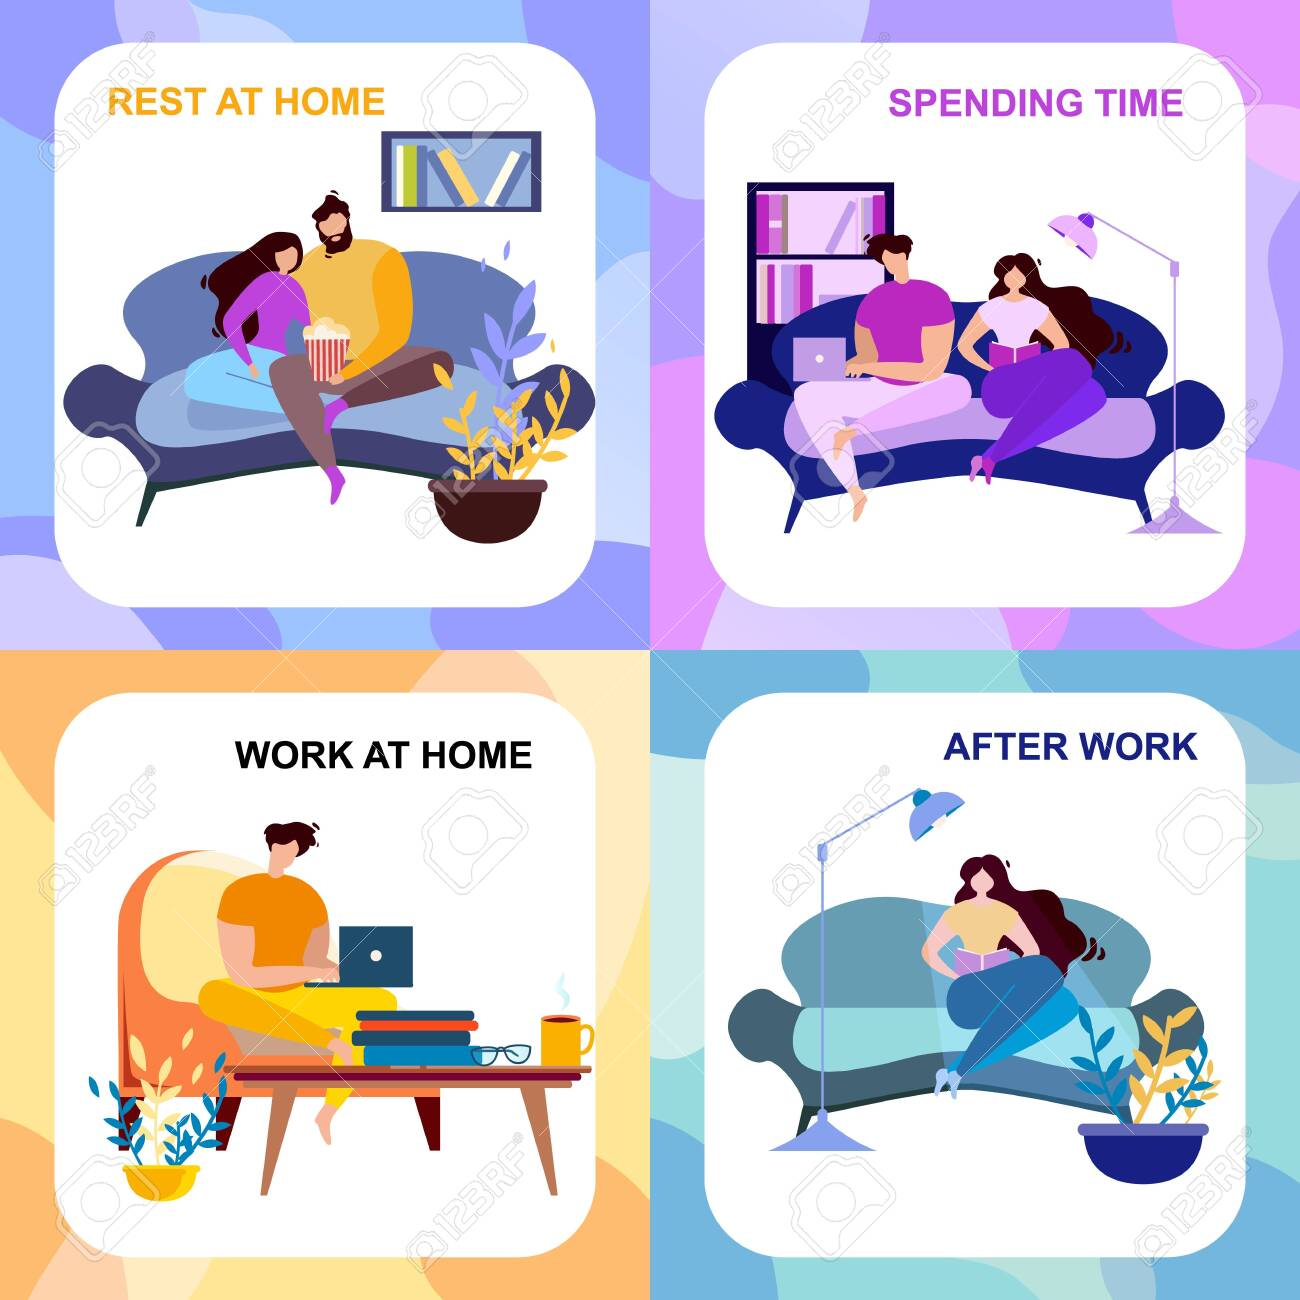 After Work Rest At Home Spending Time Banner Set Cartoon People Royalty Free Cliparts Vectors And Stock Illustration Image 123492402